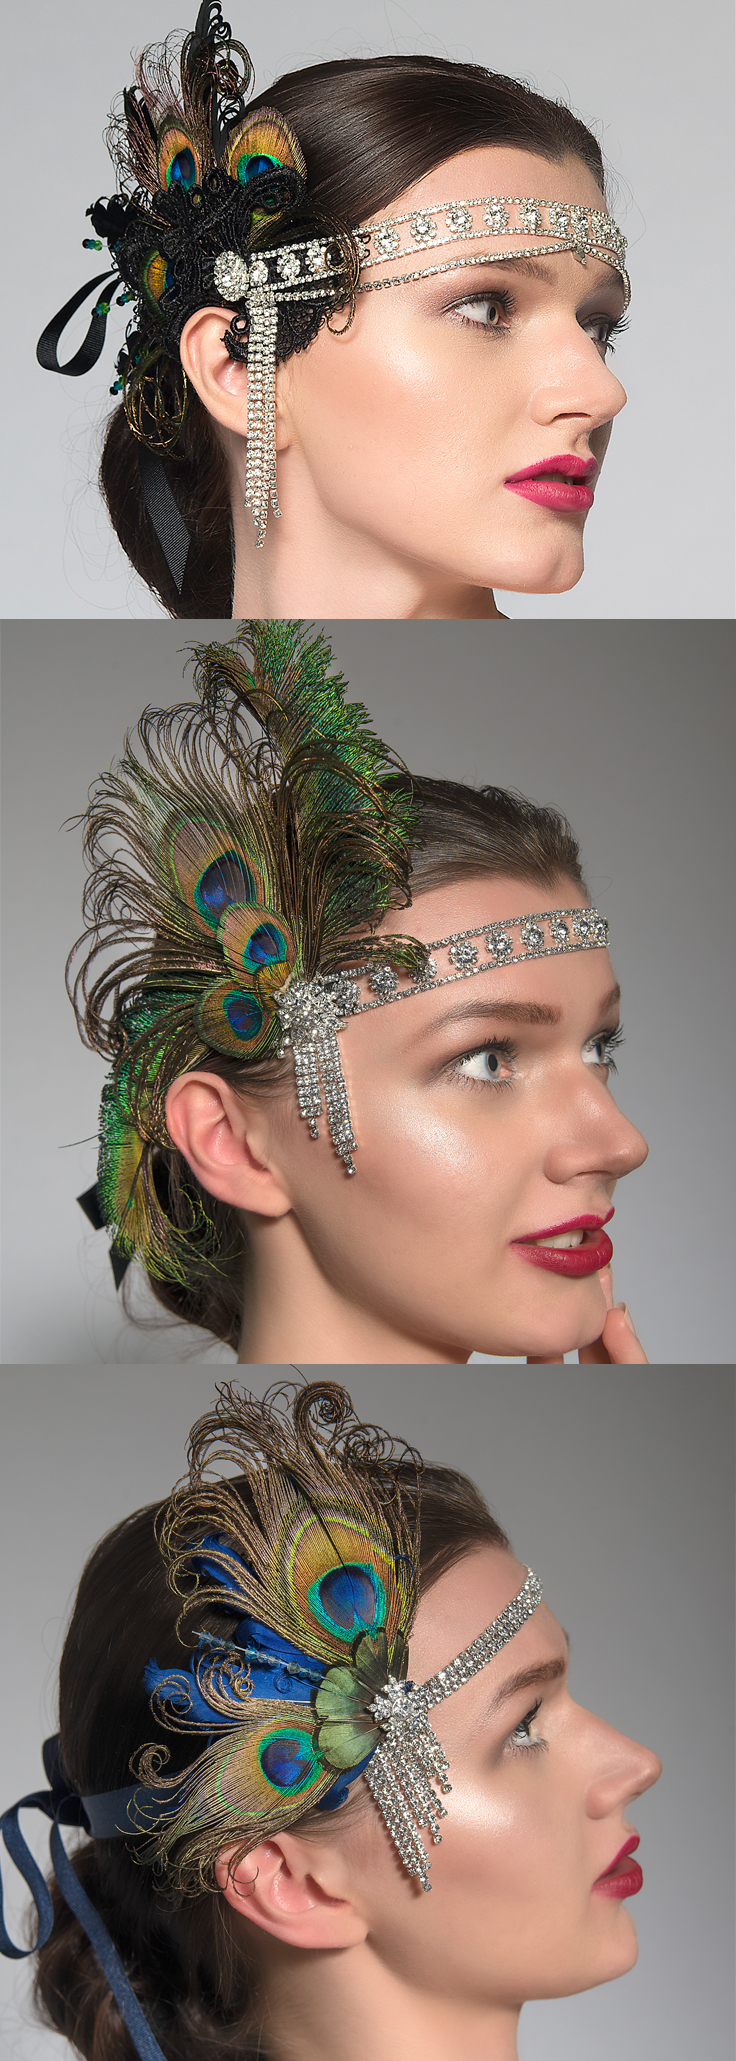 Flappergirl Headbands with Peacock Feathers and Crystals. Perfect for Gatsby Party, Jazz Era Theme Parties, Halloween and Christmas, New Years Eve, Birthday Parties. Dopwnton Abbey, Roaring Twenties Millinery